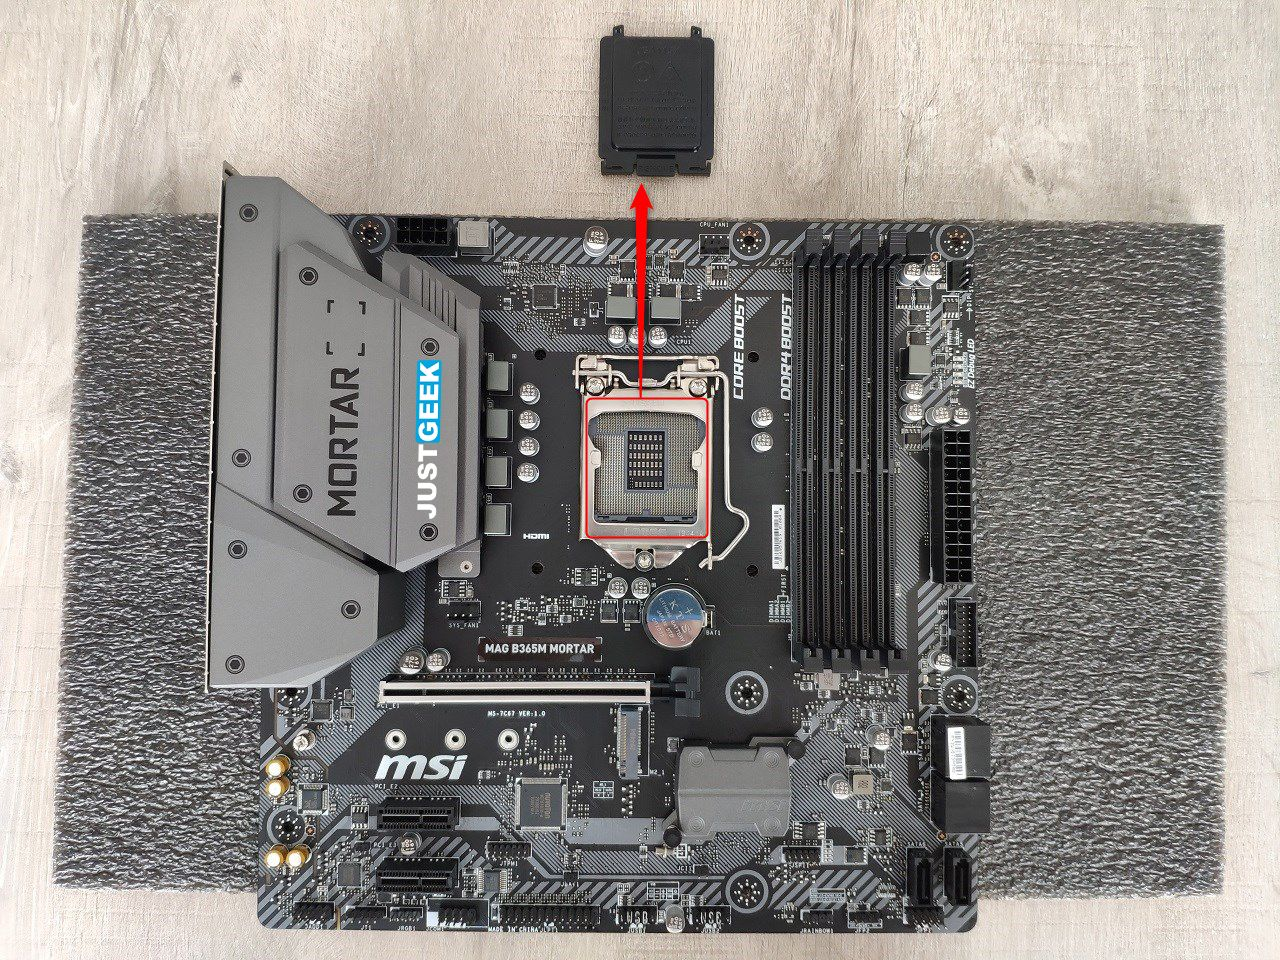 Tutoriel montage PC : extraction du cache de protection du socket de la carte-mère